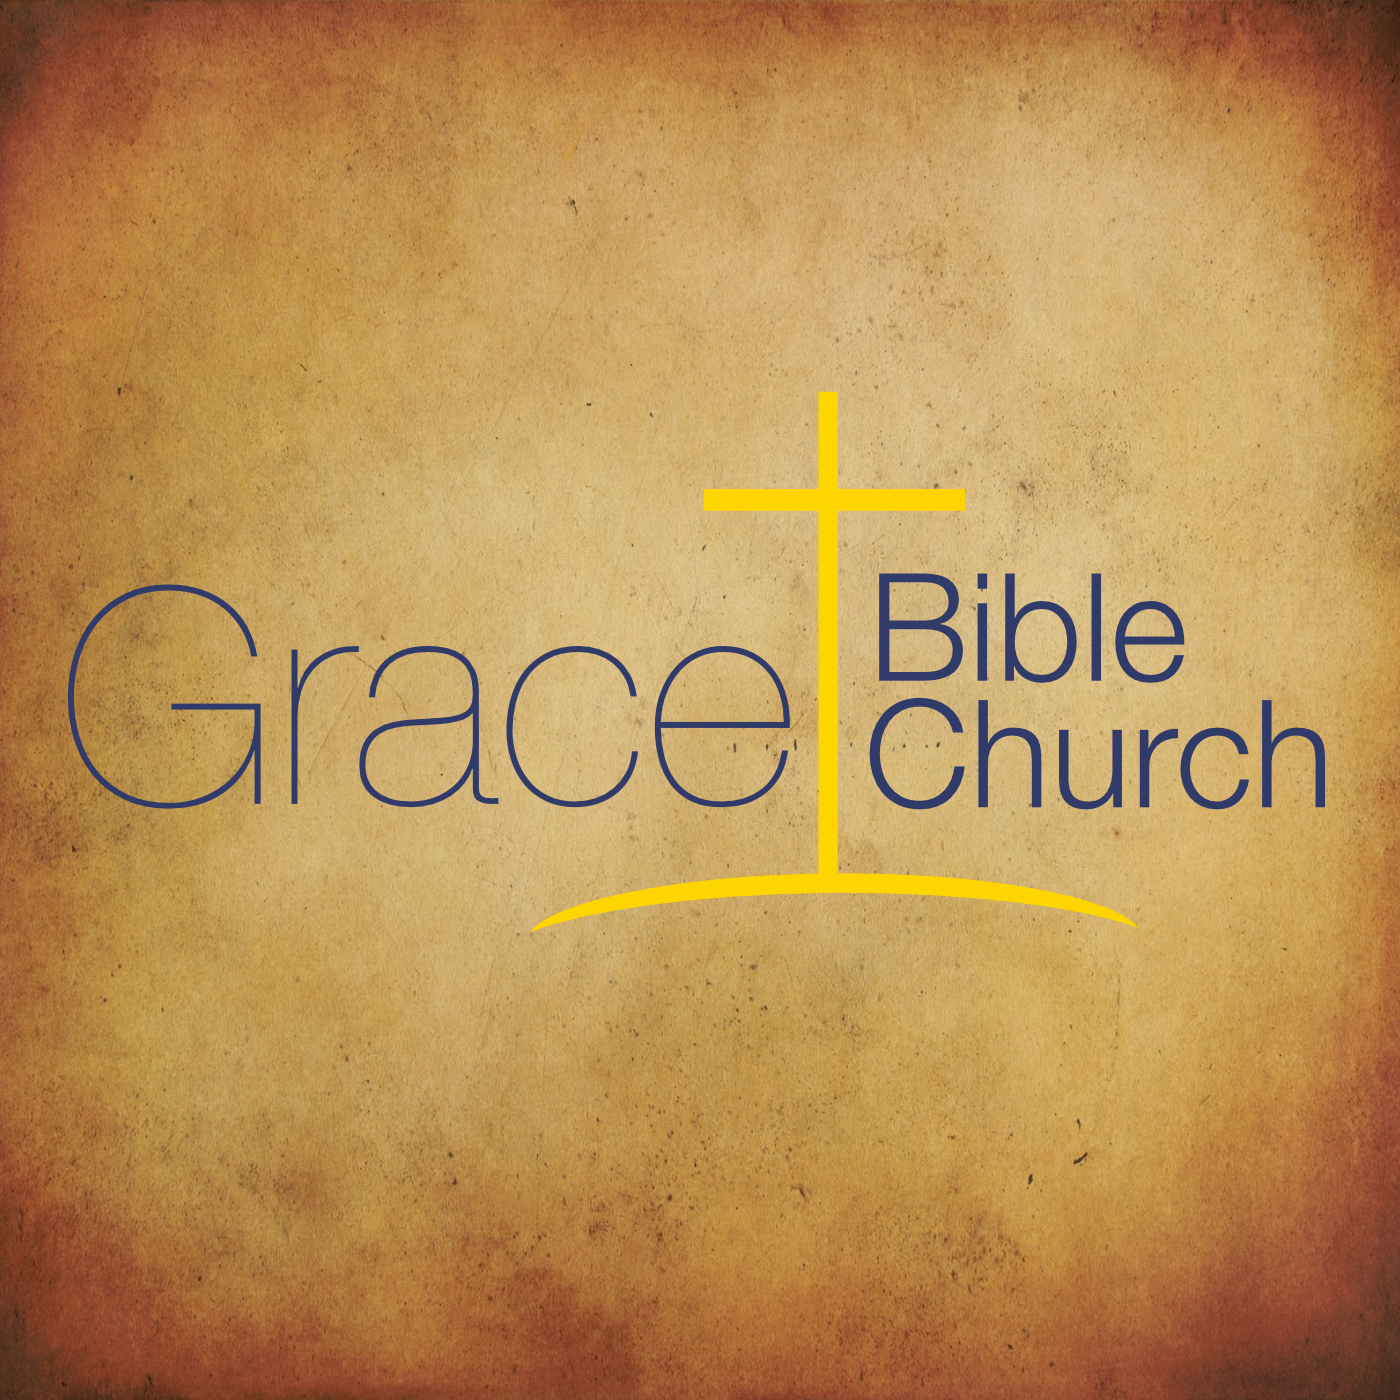 Grace Bible Church - Las Cruces